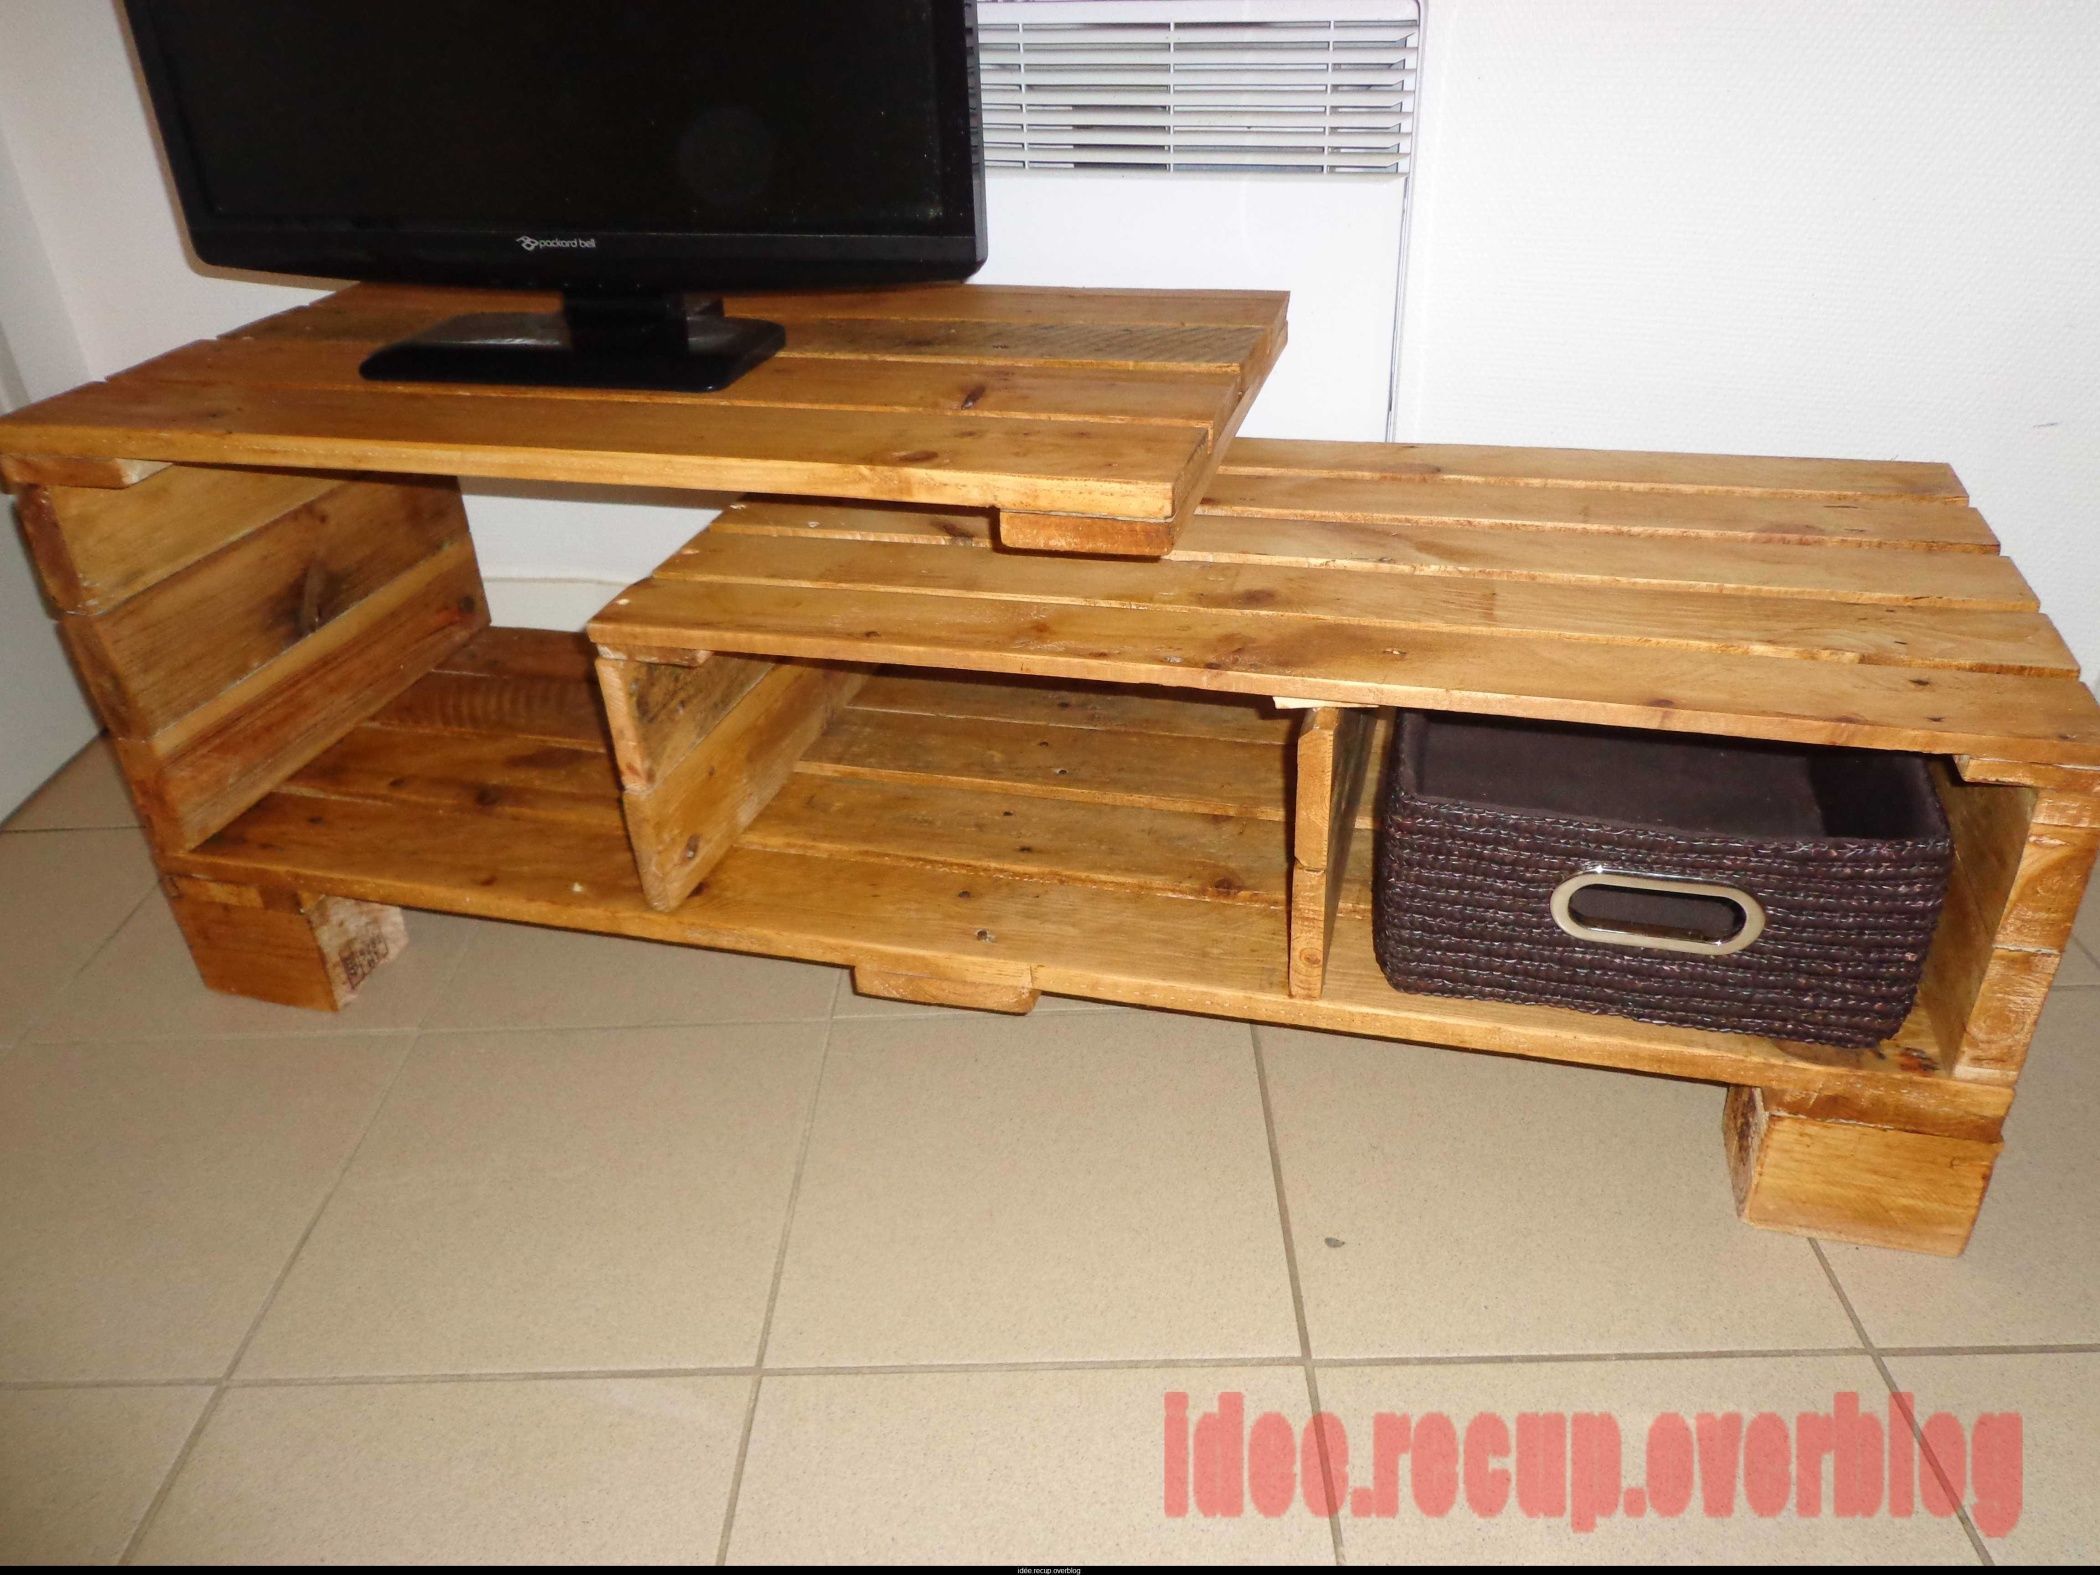 Meuble Tv En Palette Meuble Tv En Palette Diy Madera Madera Reciclada Muebles